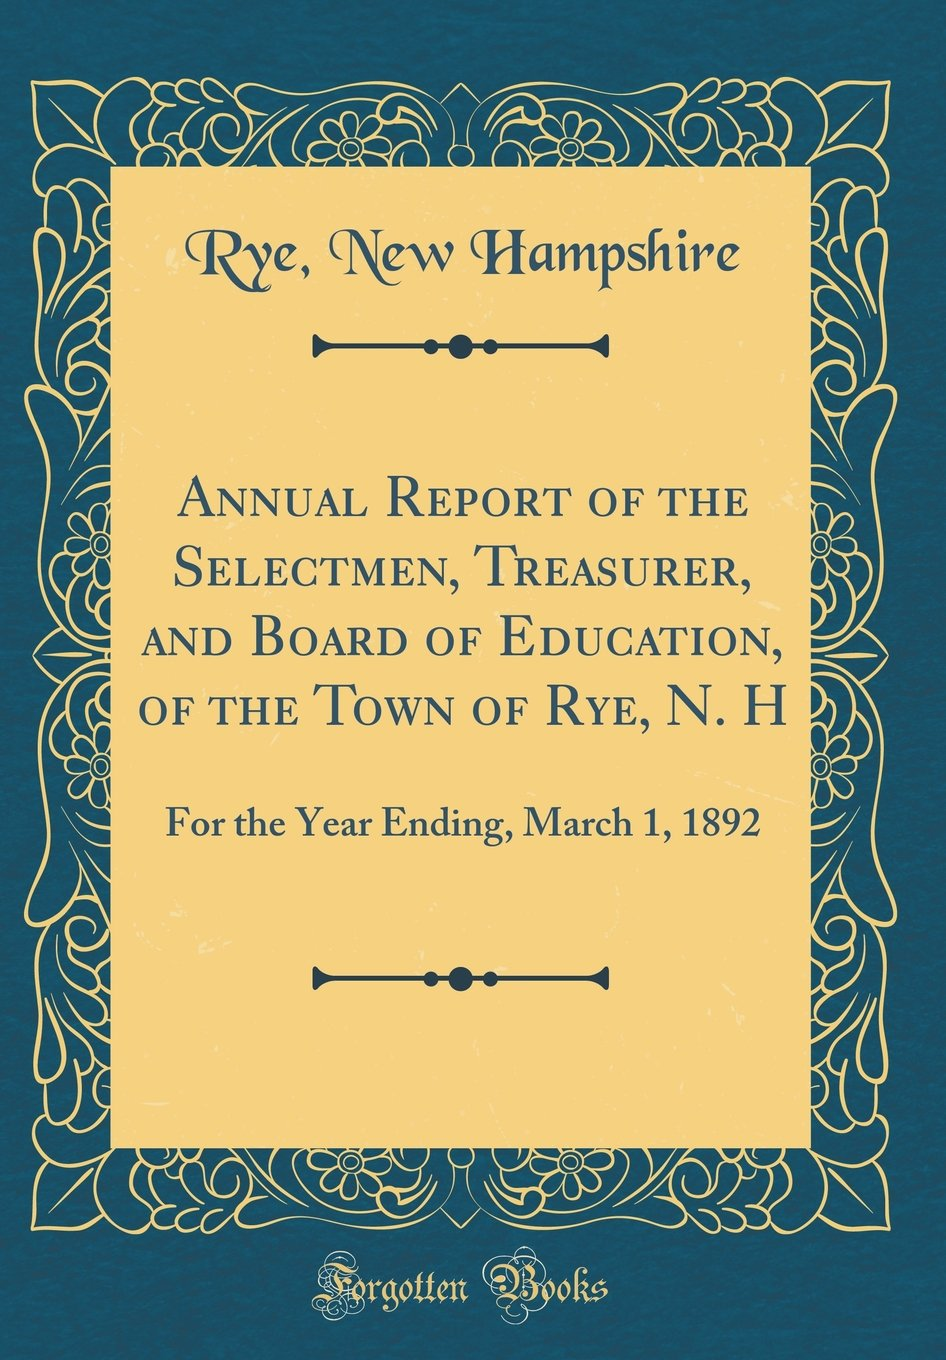 Download Annual Report of the Selectmen, Treasurer, and Board of Education, of the Town of Rye, N. H: For the Year Ending, March 1, 1892 (Classic Reprint) PDF